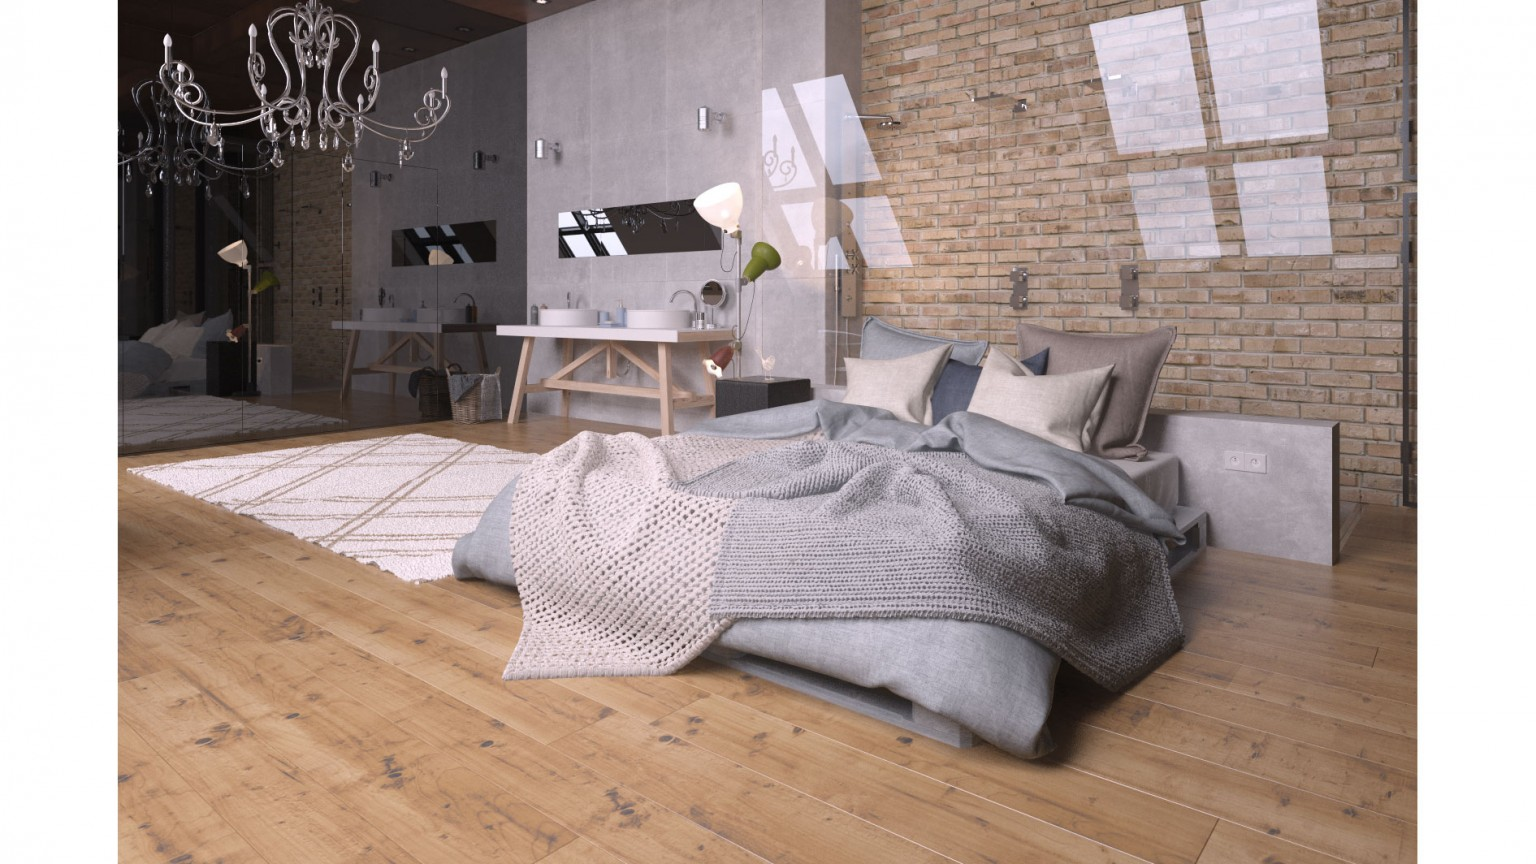 Evermotion Archmodels vol 164 VRAY only